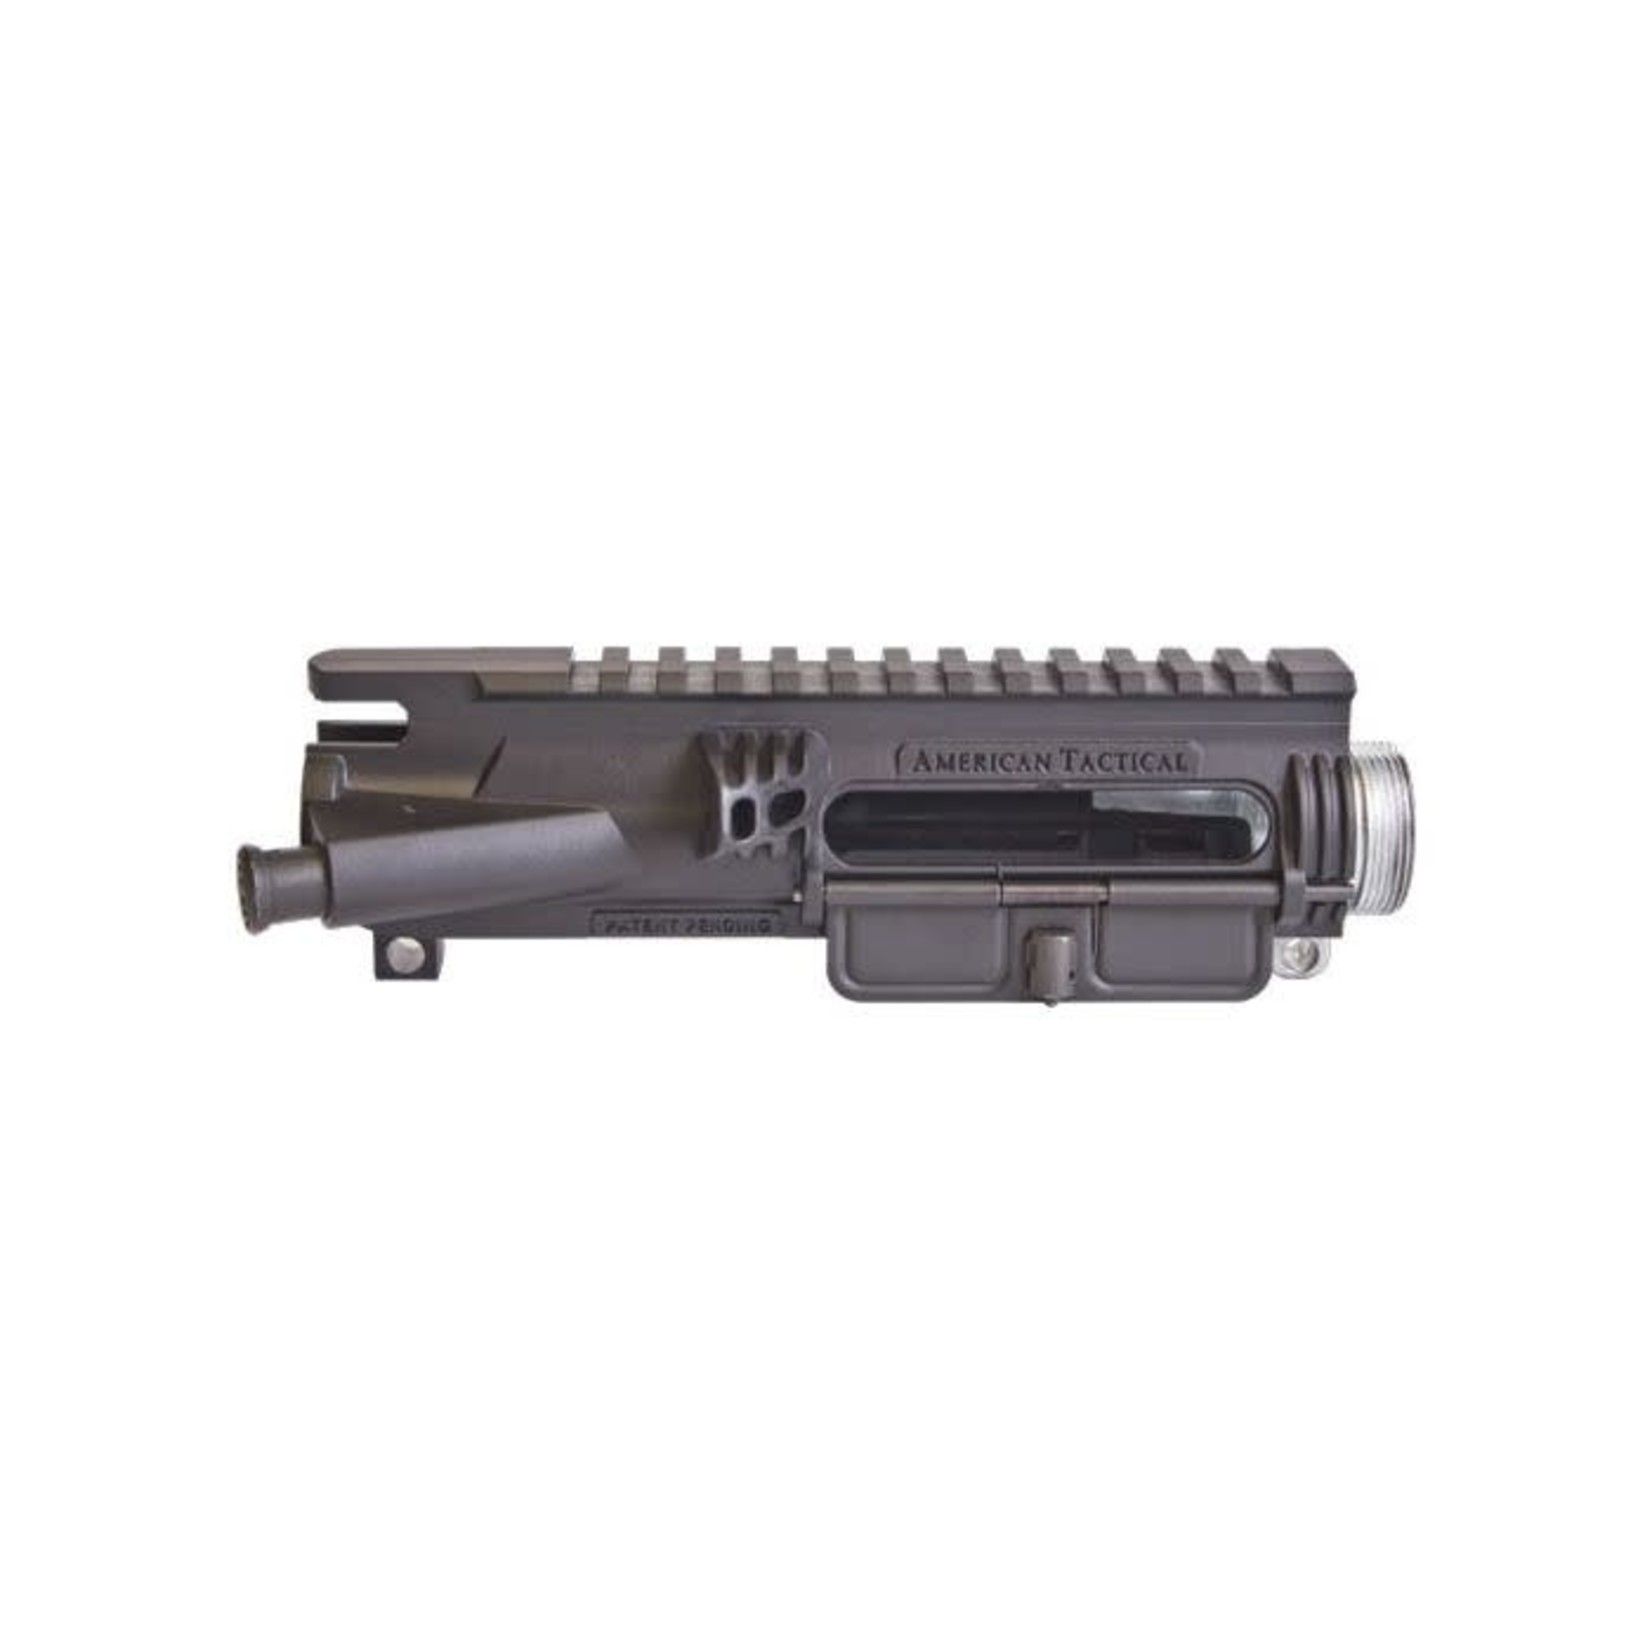 American Tactical ATI AR15 Multiple Caliber Stripped Metal Reinforced Polymer Upper Receiver